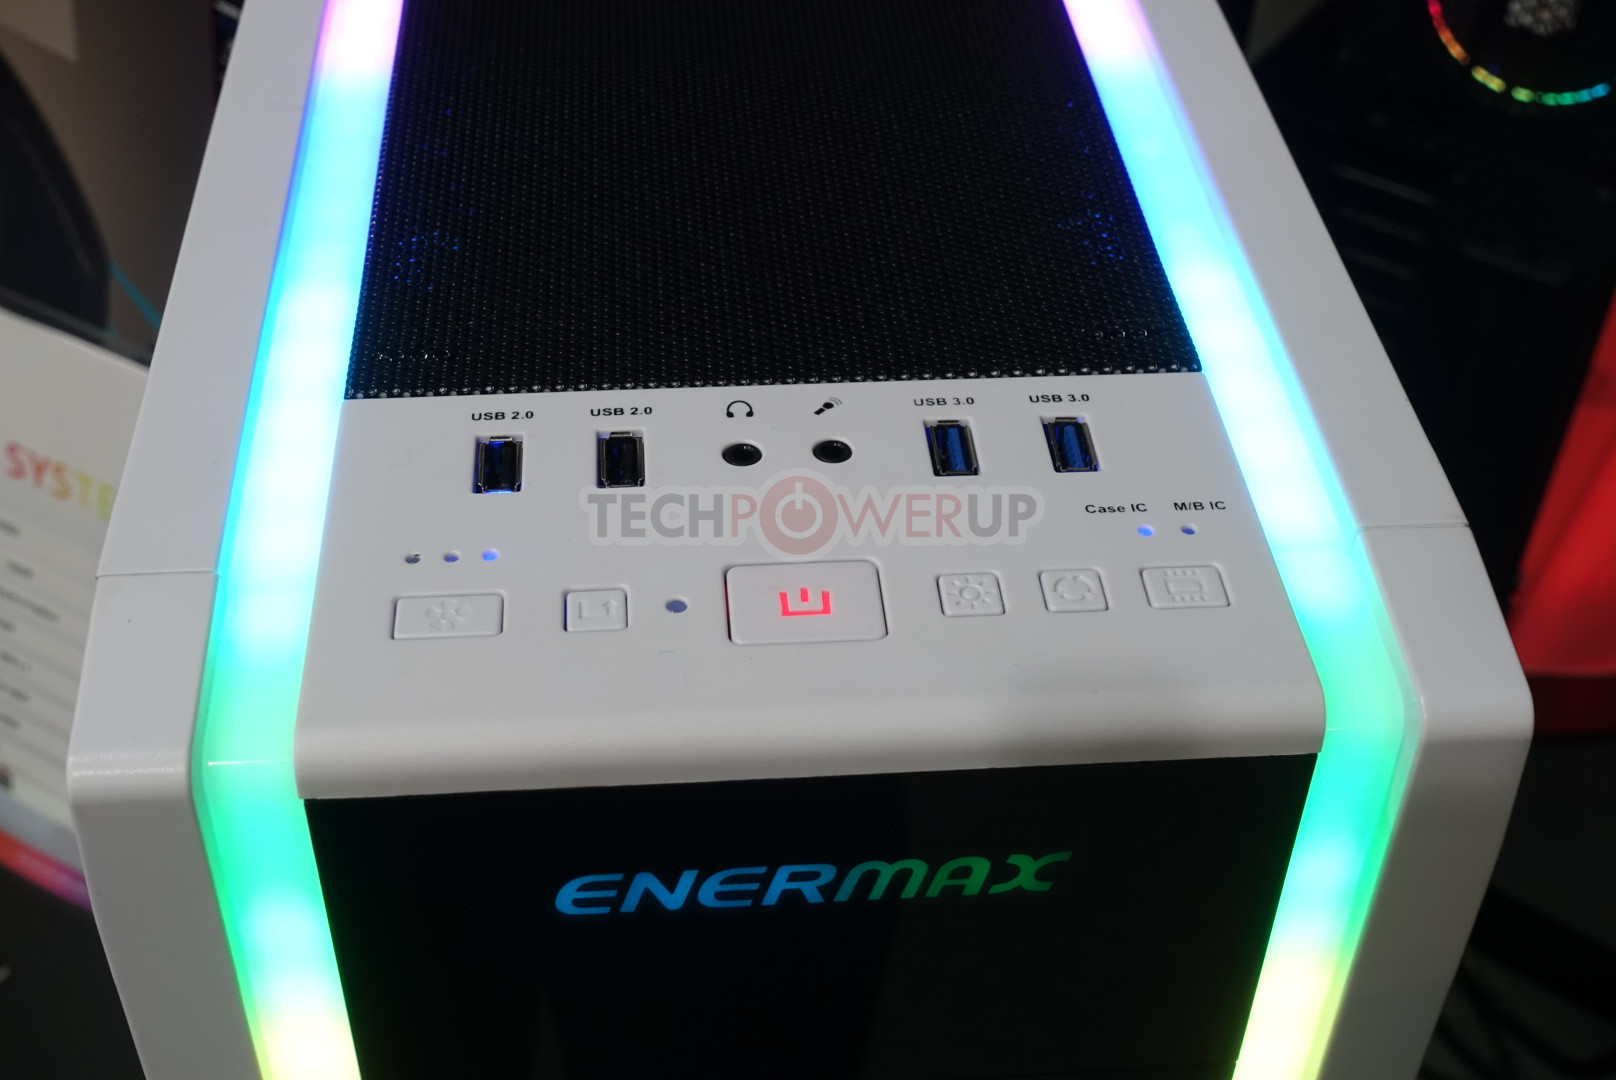 News Posts Matching Enermax Techpowerup Digital Alliance Psu Gaming 500 Watt 80 Bronze The Integrated Hub Lets Users Sync Up To Five Rgb Devices And Control A Total Of Six Fans Consumers Algo Get Option Can Choose Between An Acrylic Or